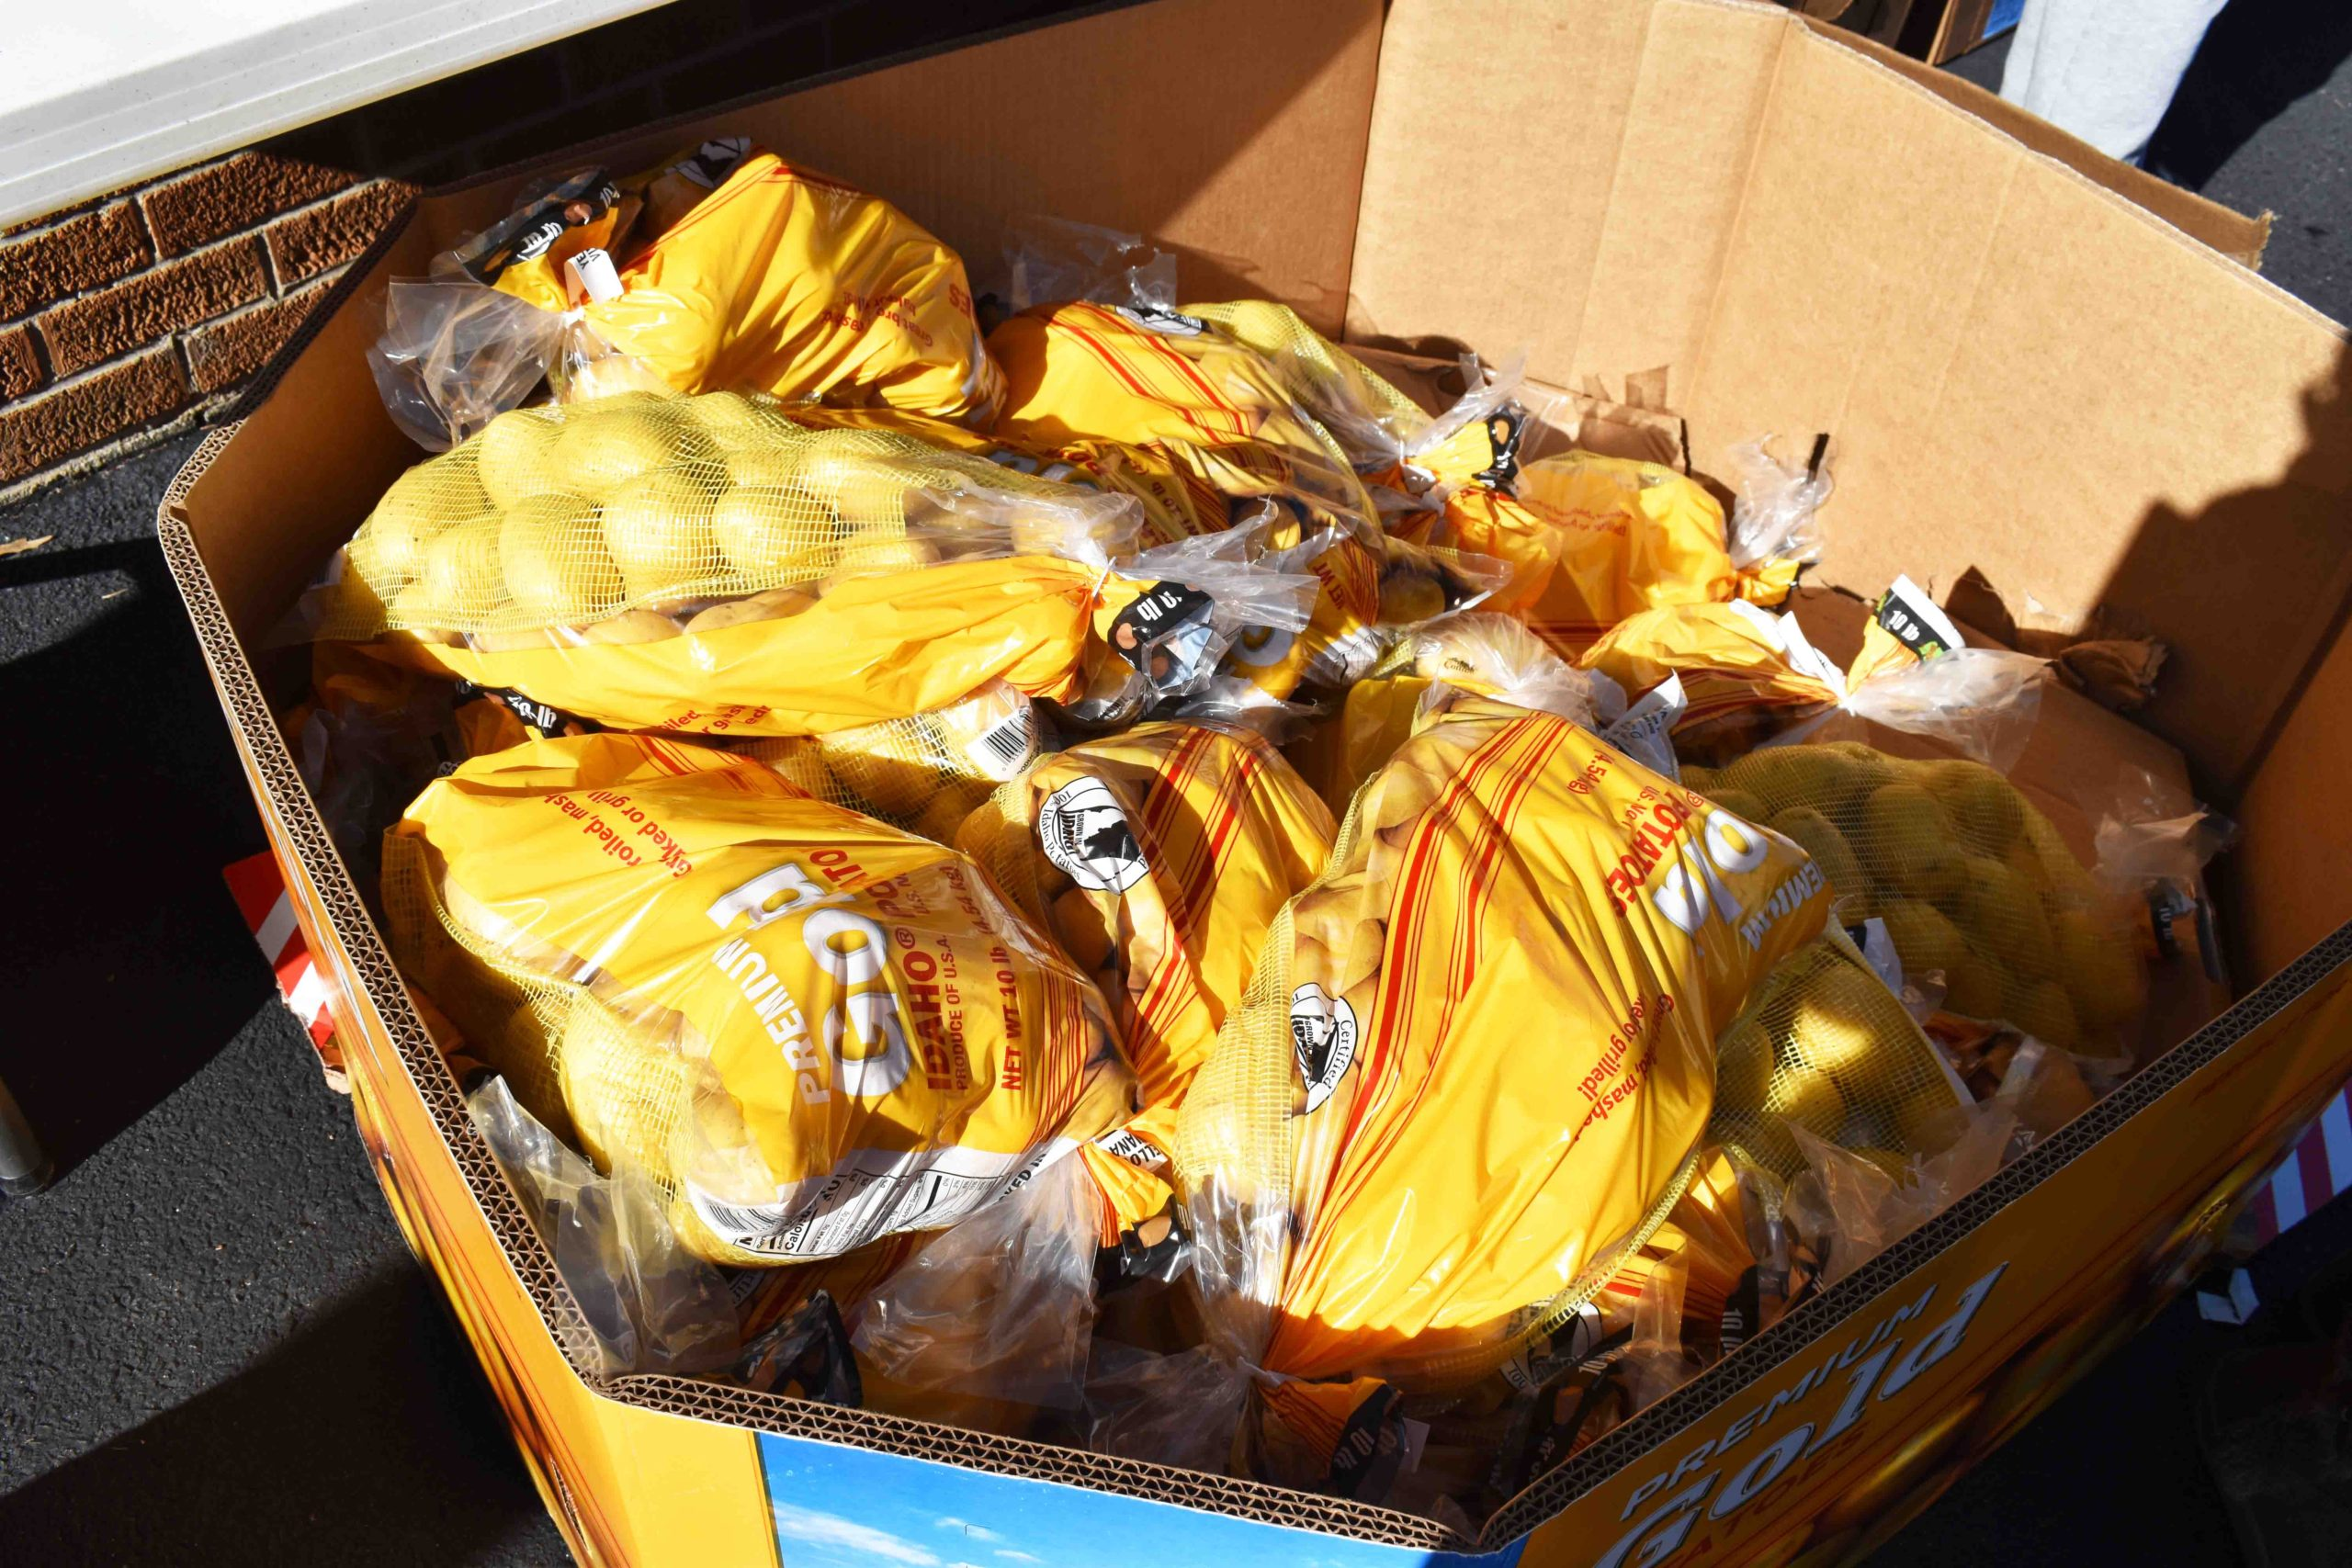 Potatoes for low-income families